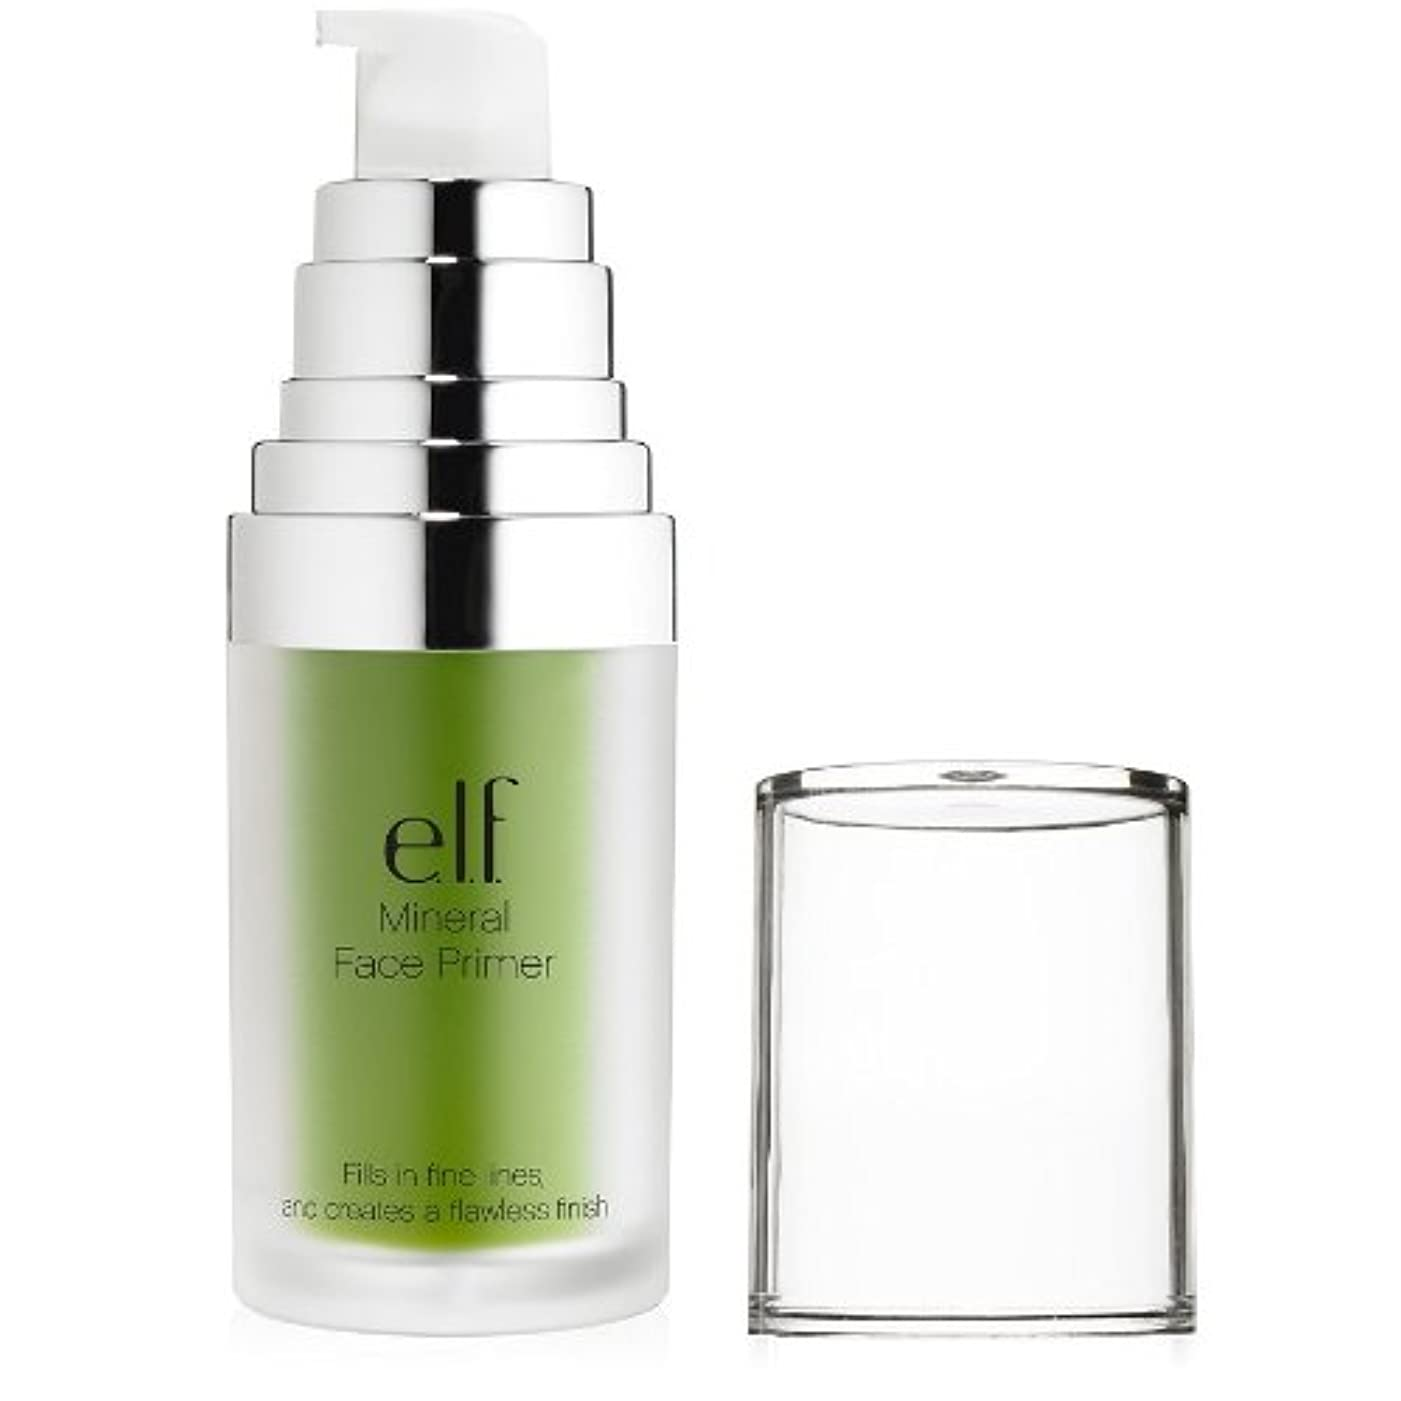 接続詞立証する非常に怒っています(3 Pack) e.l.f. Studio Mineral Infused Face Primer - Tone Adjusting Green (並行輸入品)